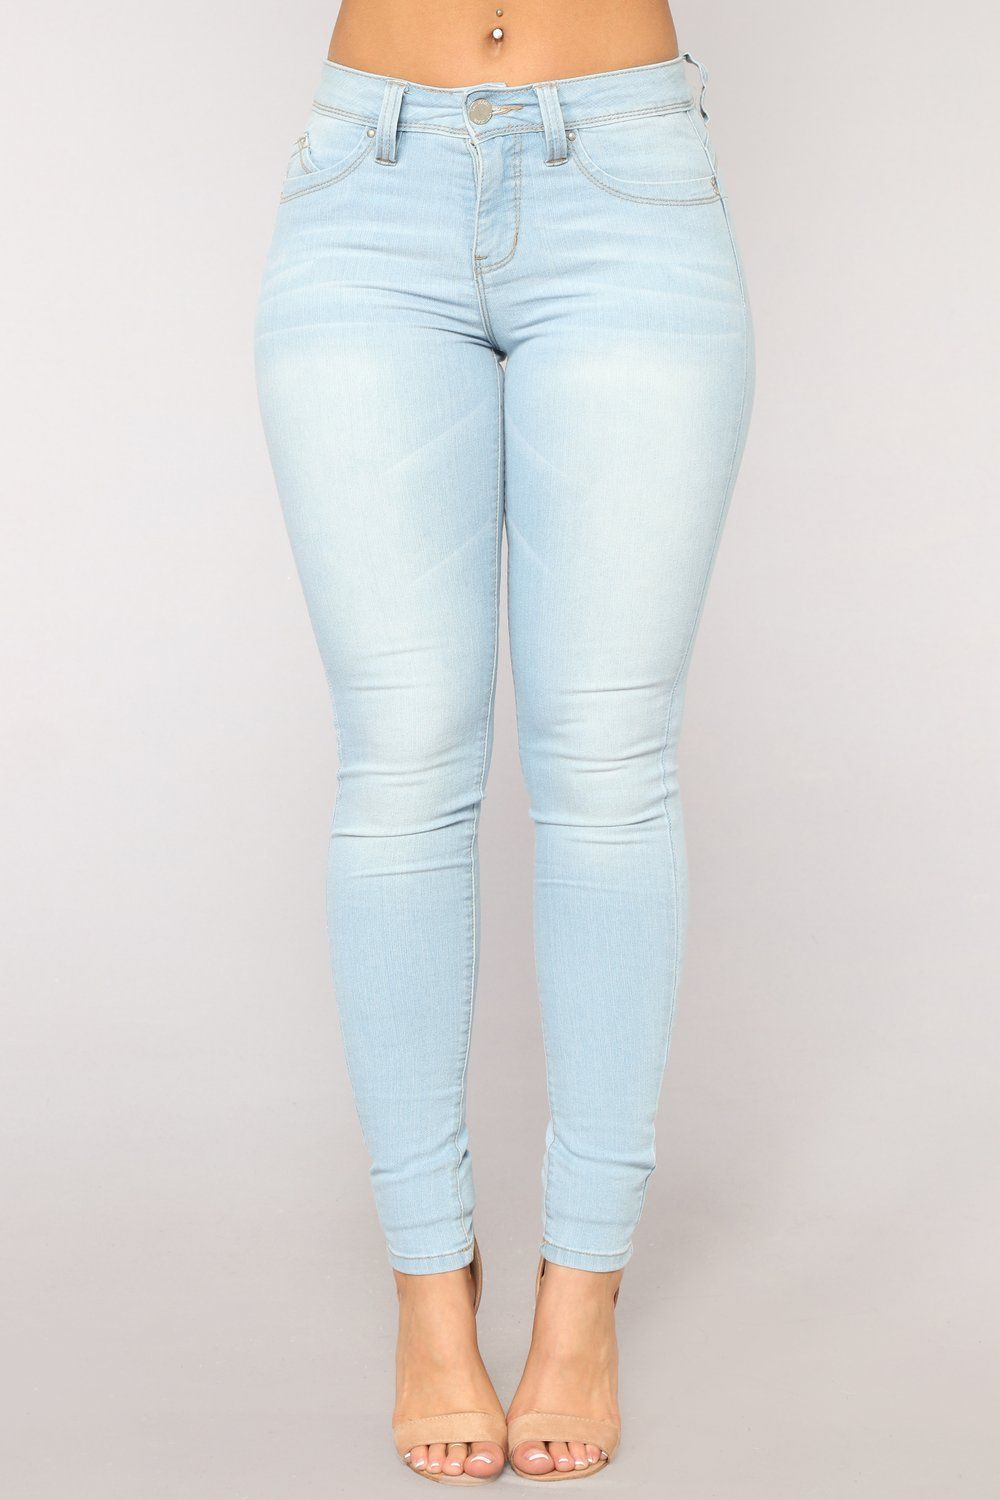 c0ae30c8e5e8 The Good Life Mid Rise Skinny Jeans - Light Blue Wash in 2018 ...